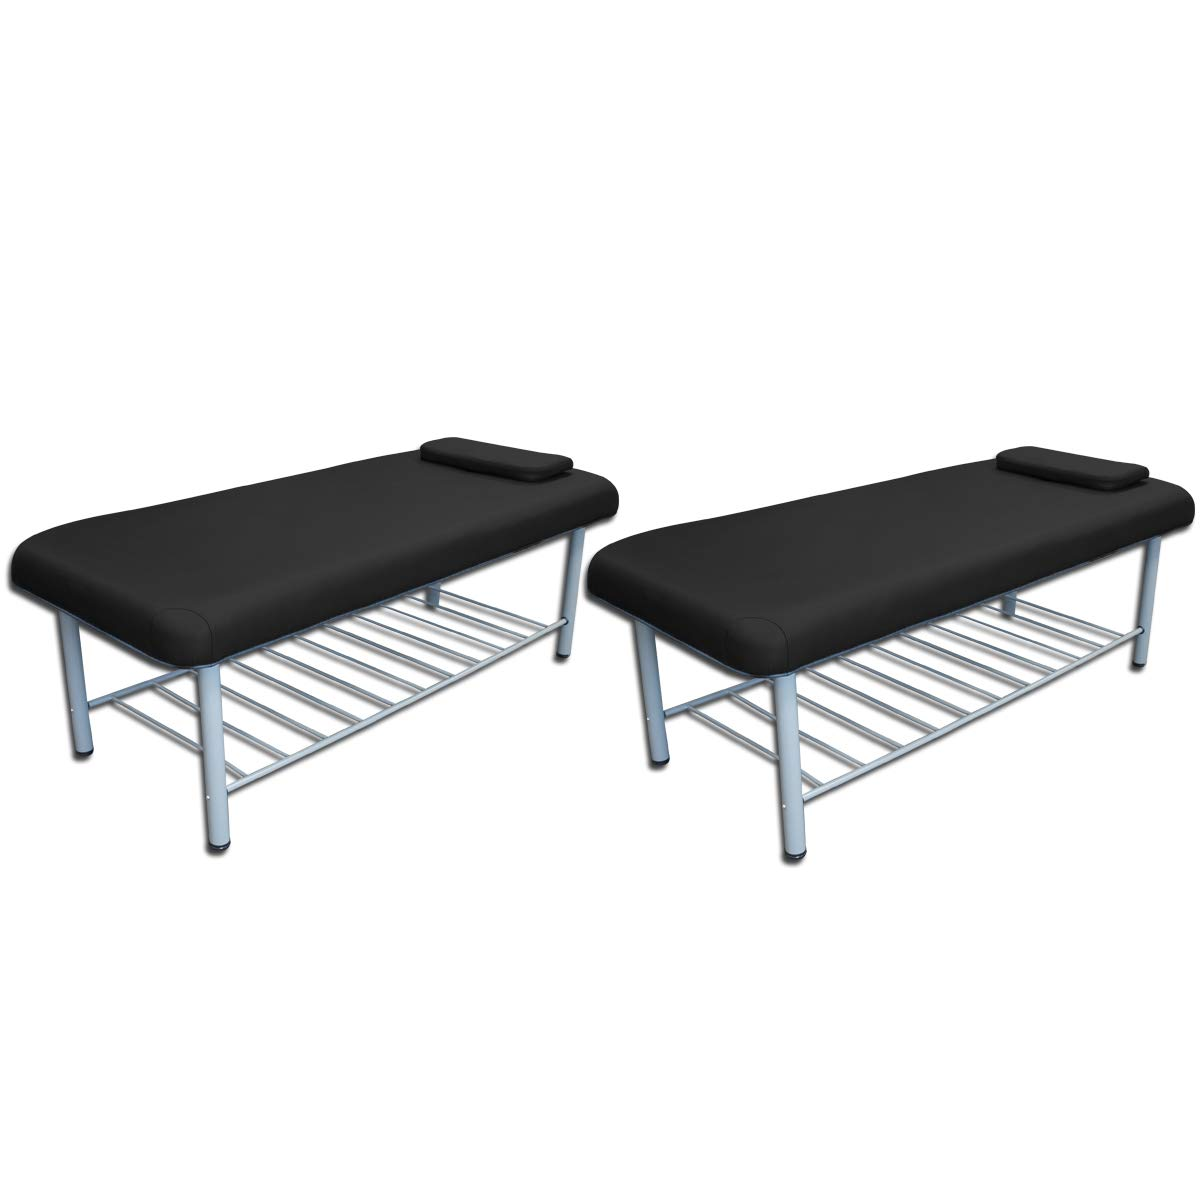 TOA Professional Metal Framed Stationary Spa Massage Table Bed w/Tray Rack (2 Black Table) by TOA Supply (Image #1)